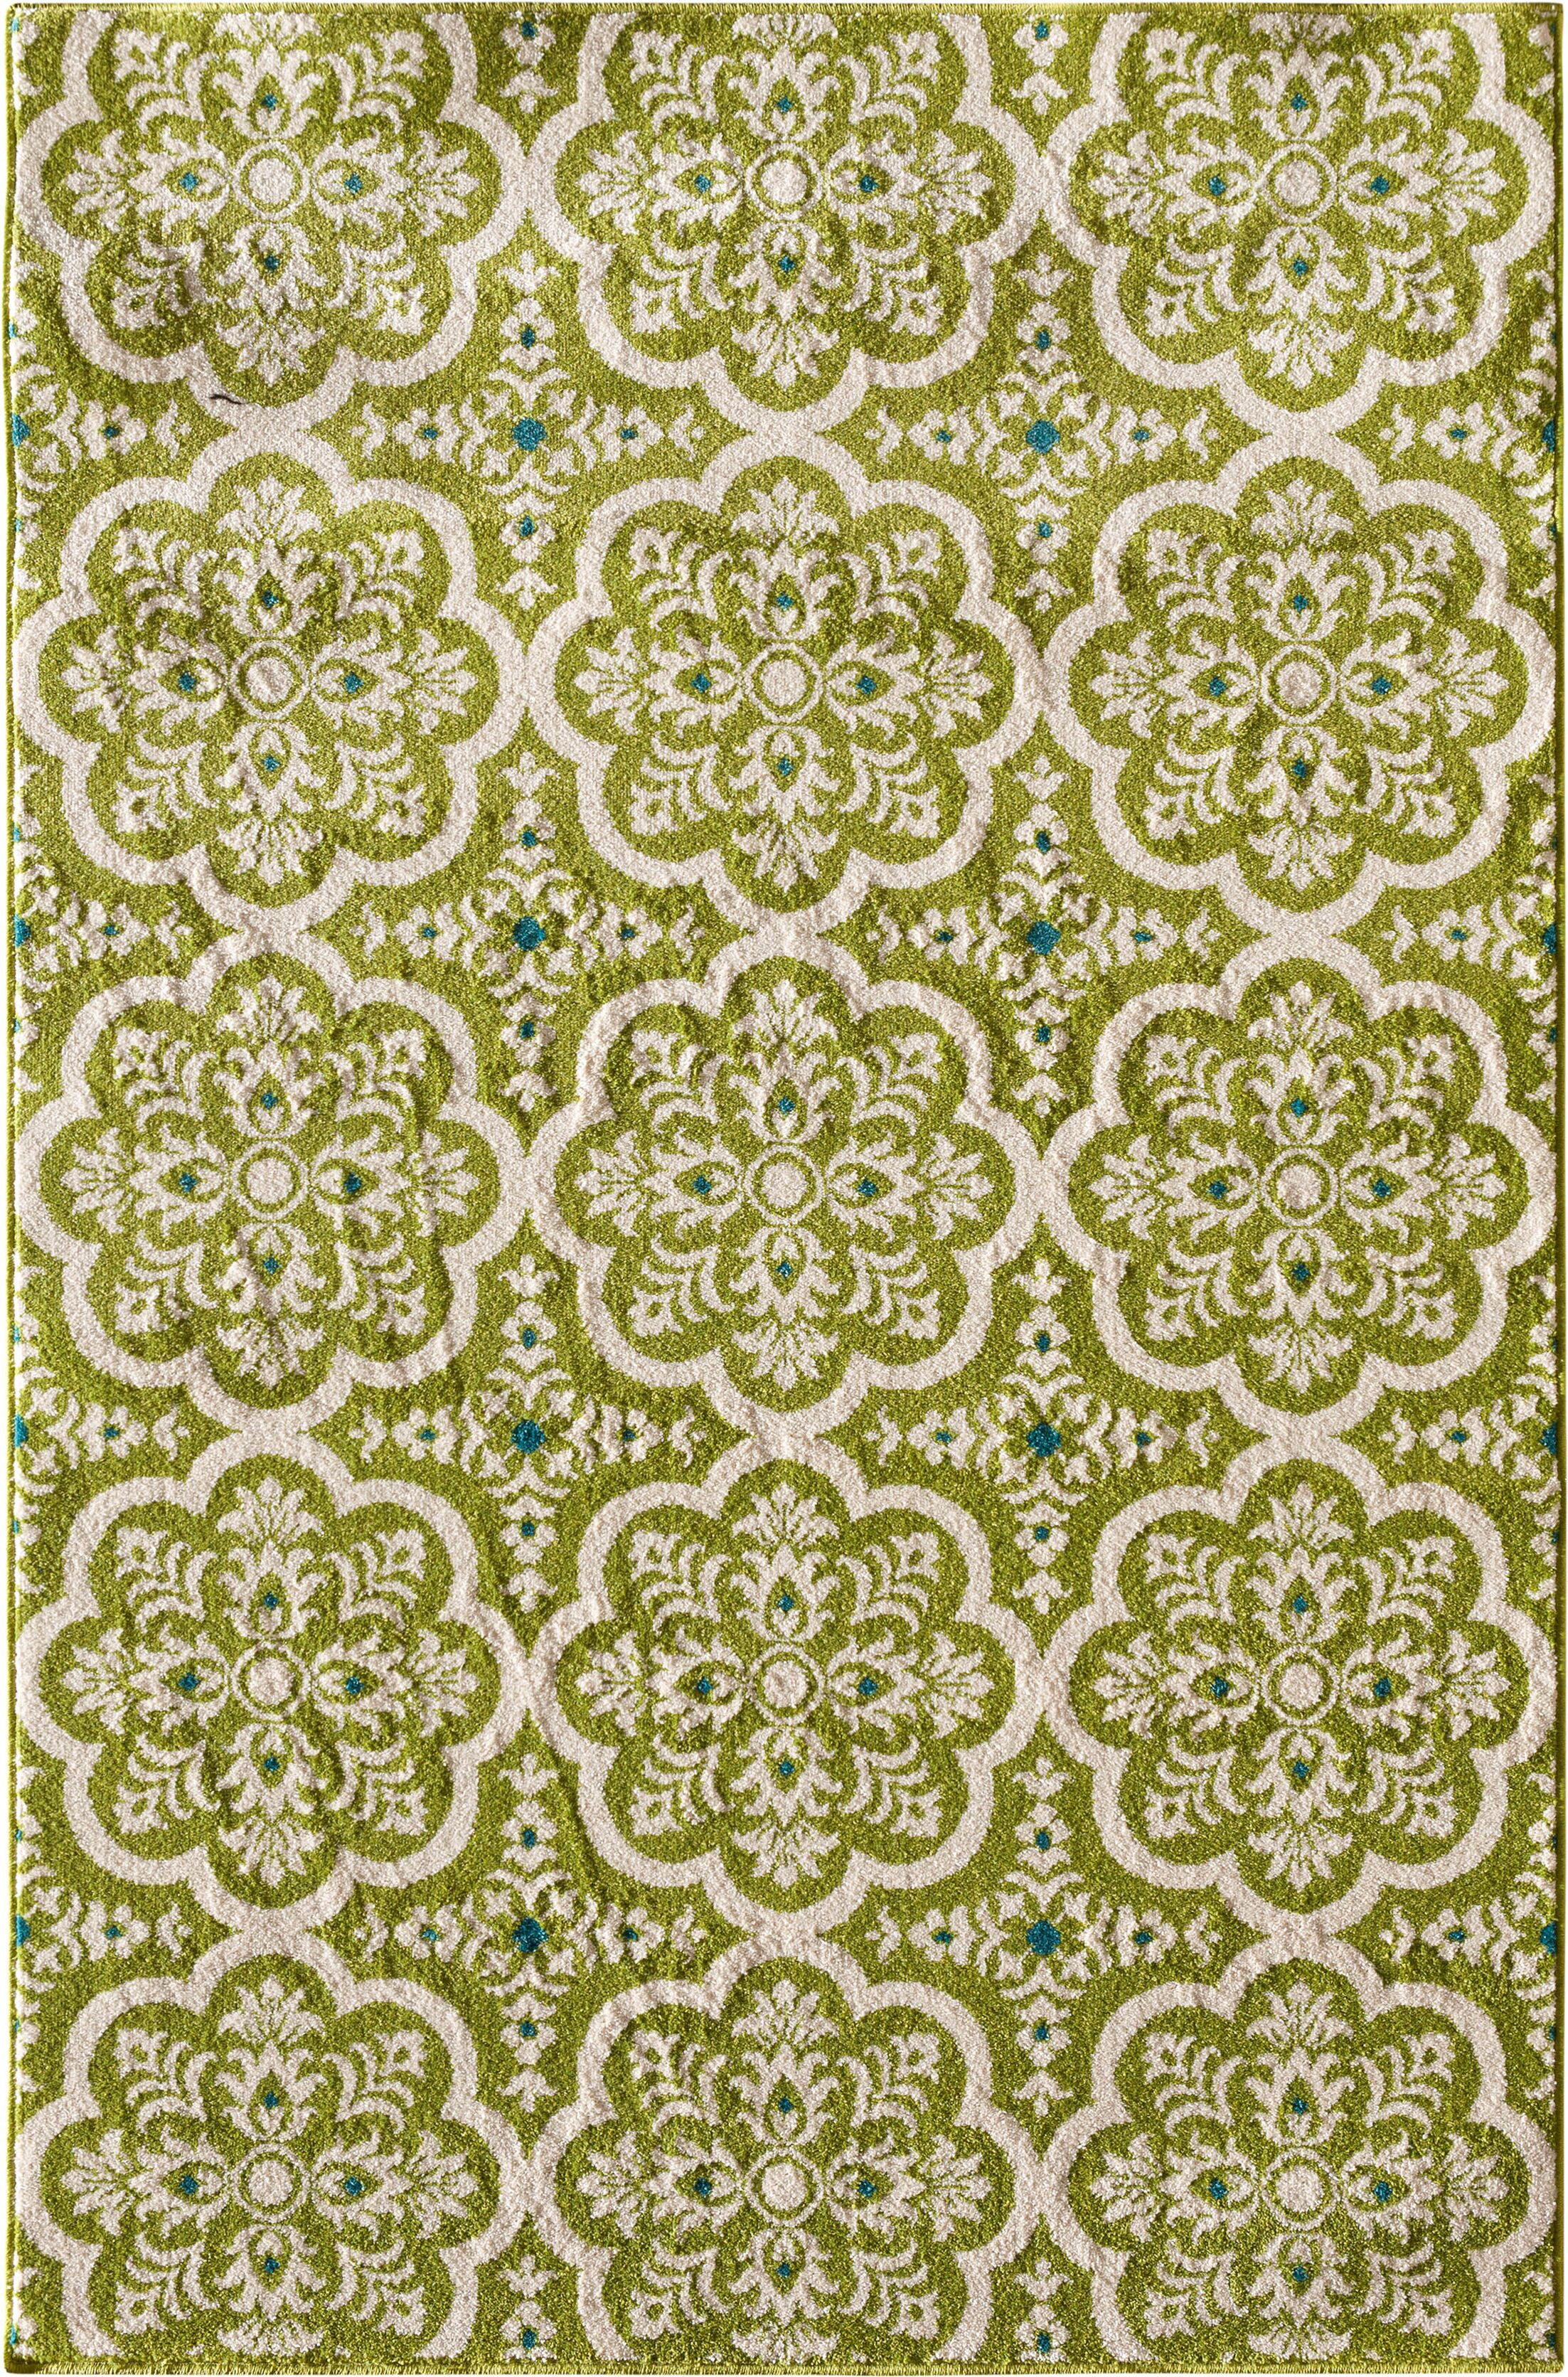 Merdasa Green Area Rug Rug Size: Rectangular 6'7